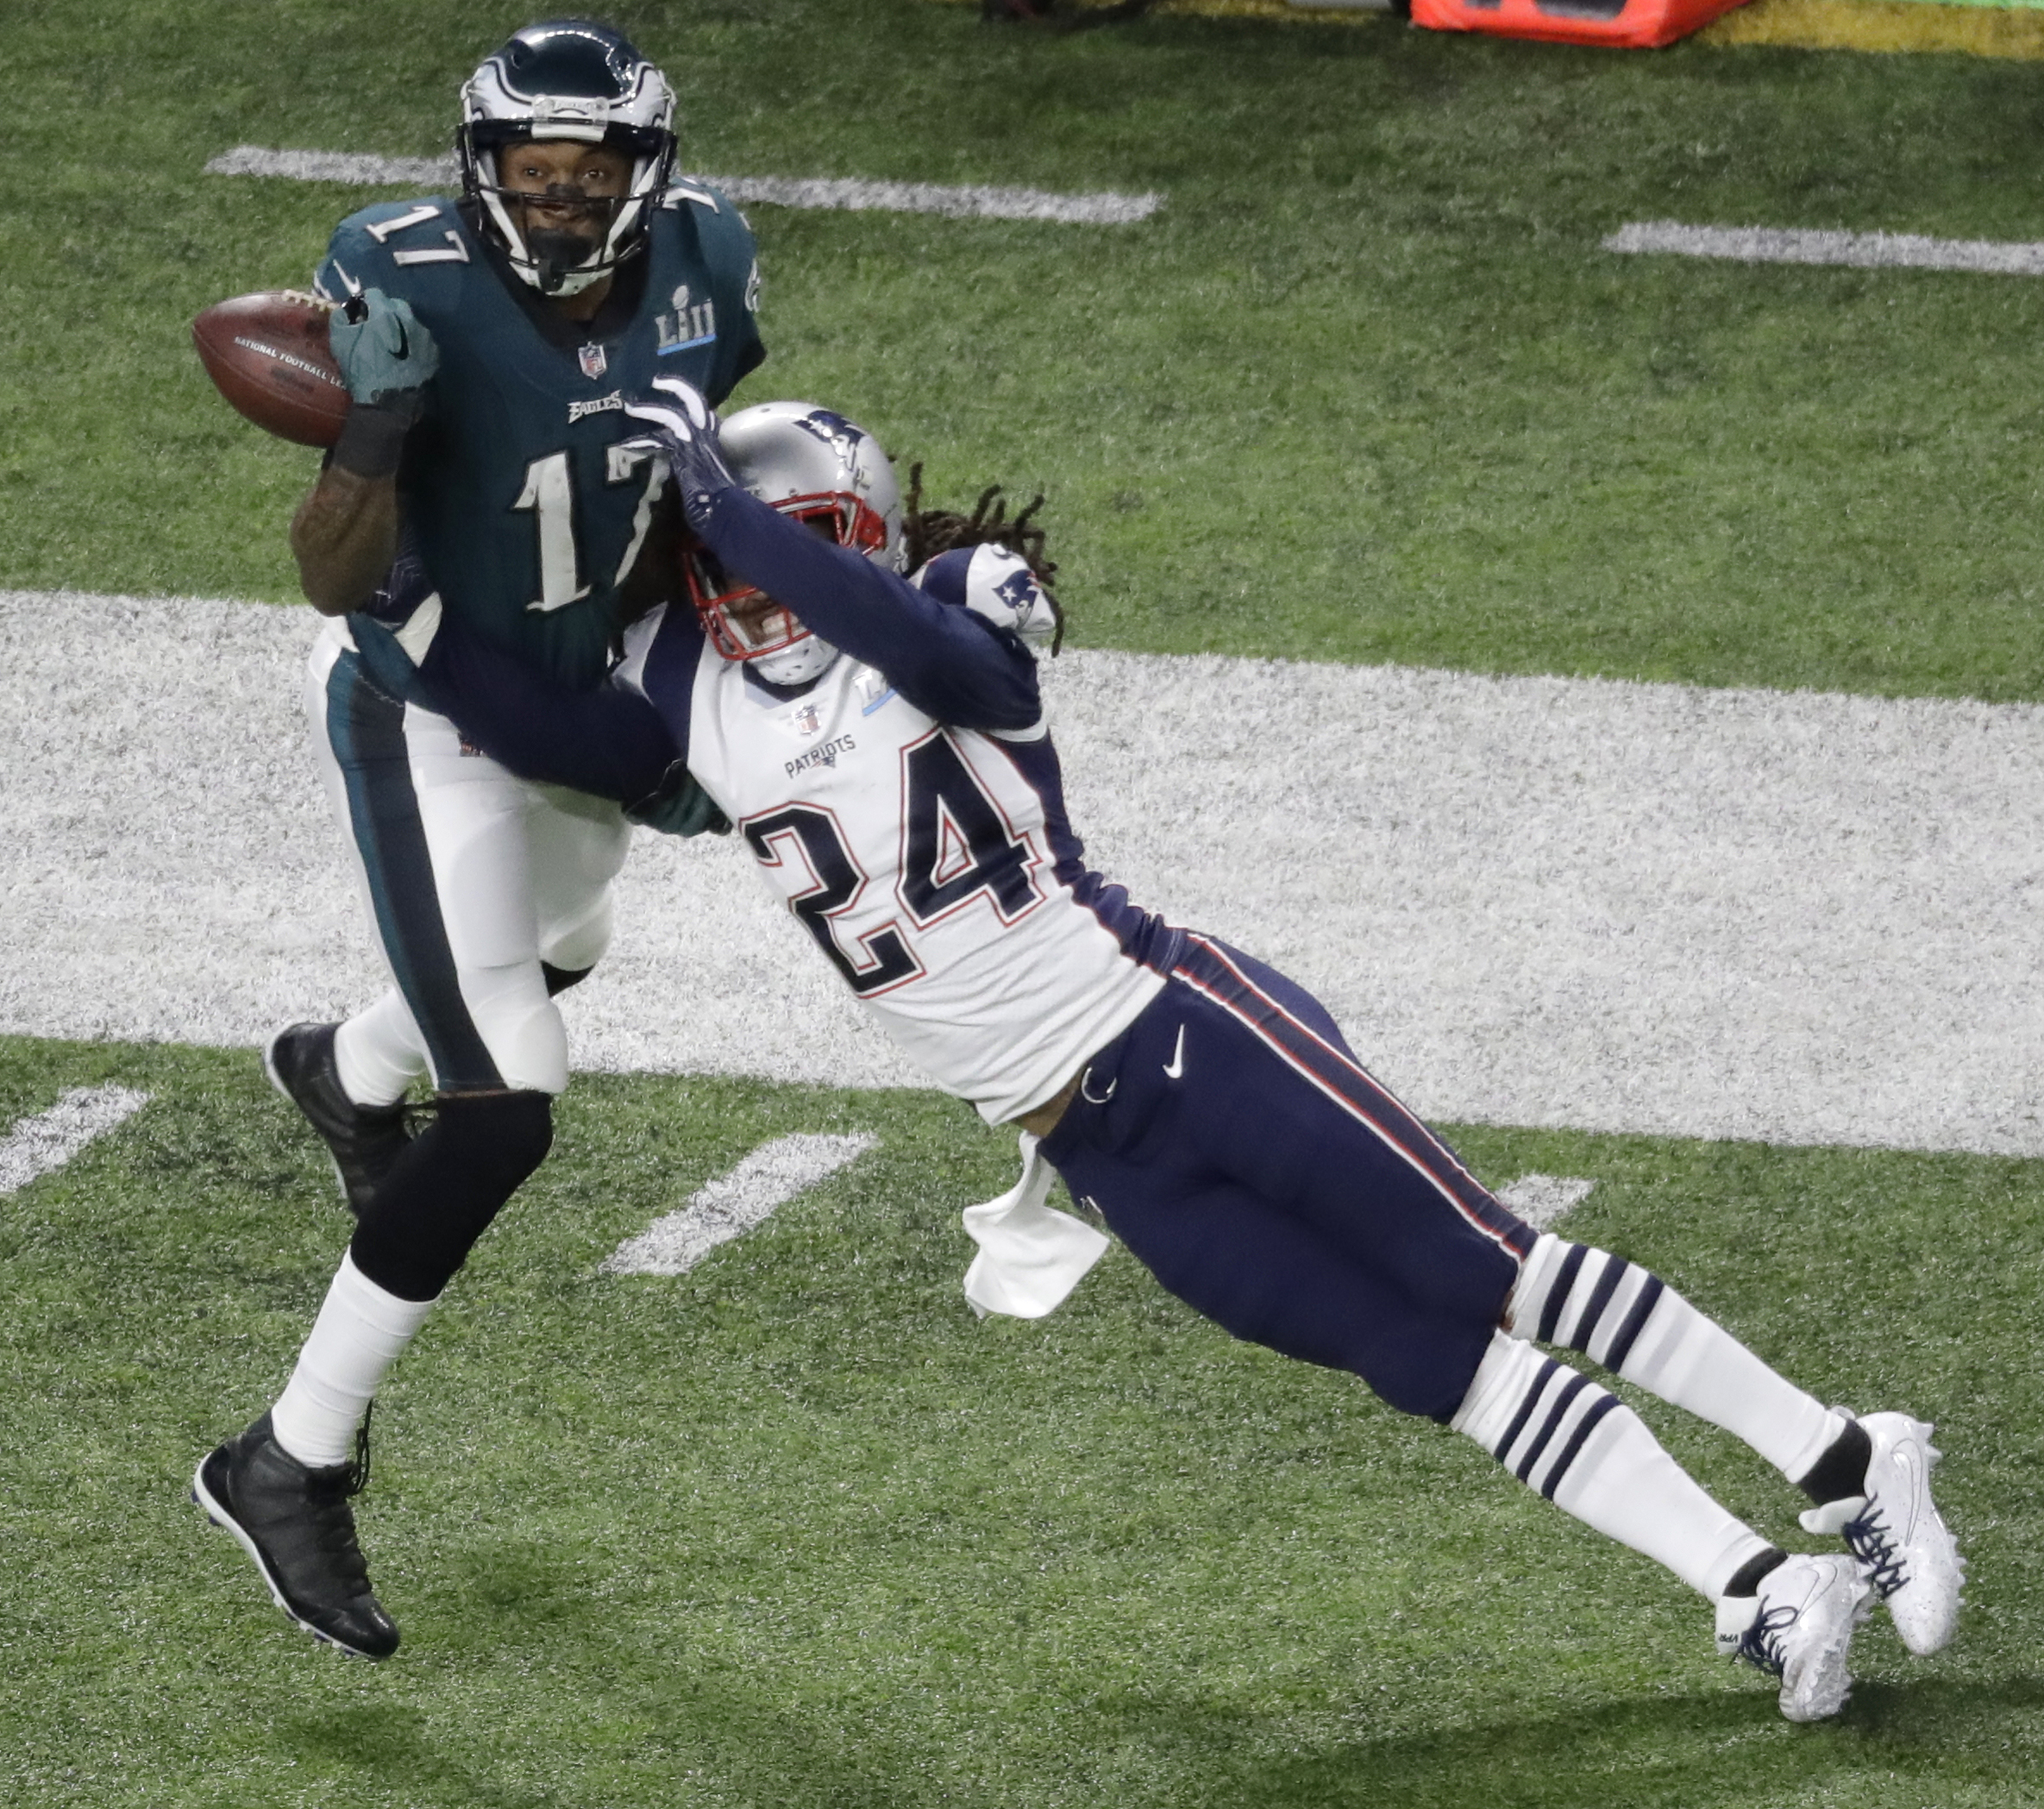 "<div class=""meta image-caption""><div class=""origin-logo origin-image ap""><span>AP</span></div><span class=""caption-text"">New England Patriots cornerback Stephon Gilmore (24) breaks up a pass intended for Philadelphia Eagles wide receiver Alshon Jeffery. (AP Photo/Eric Gay)</span></div>"